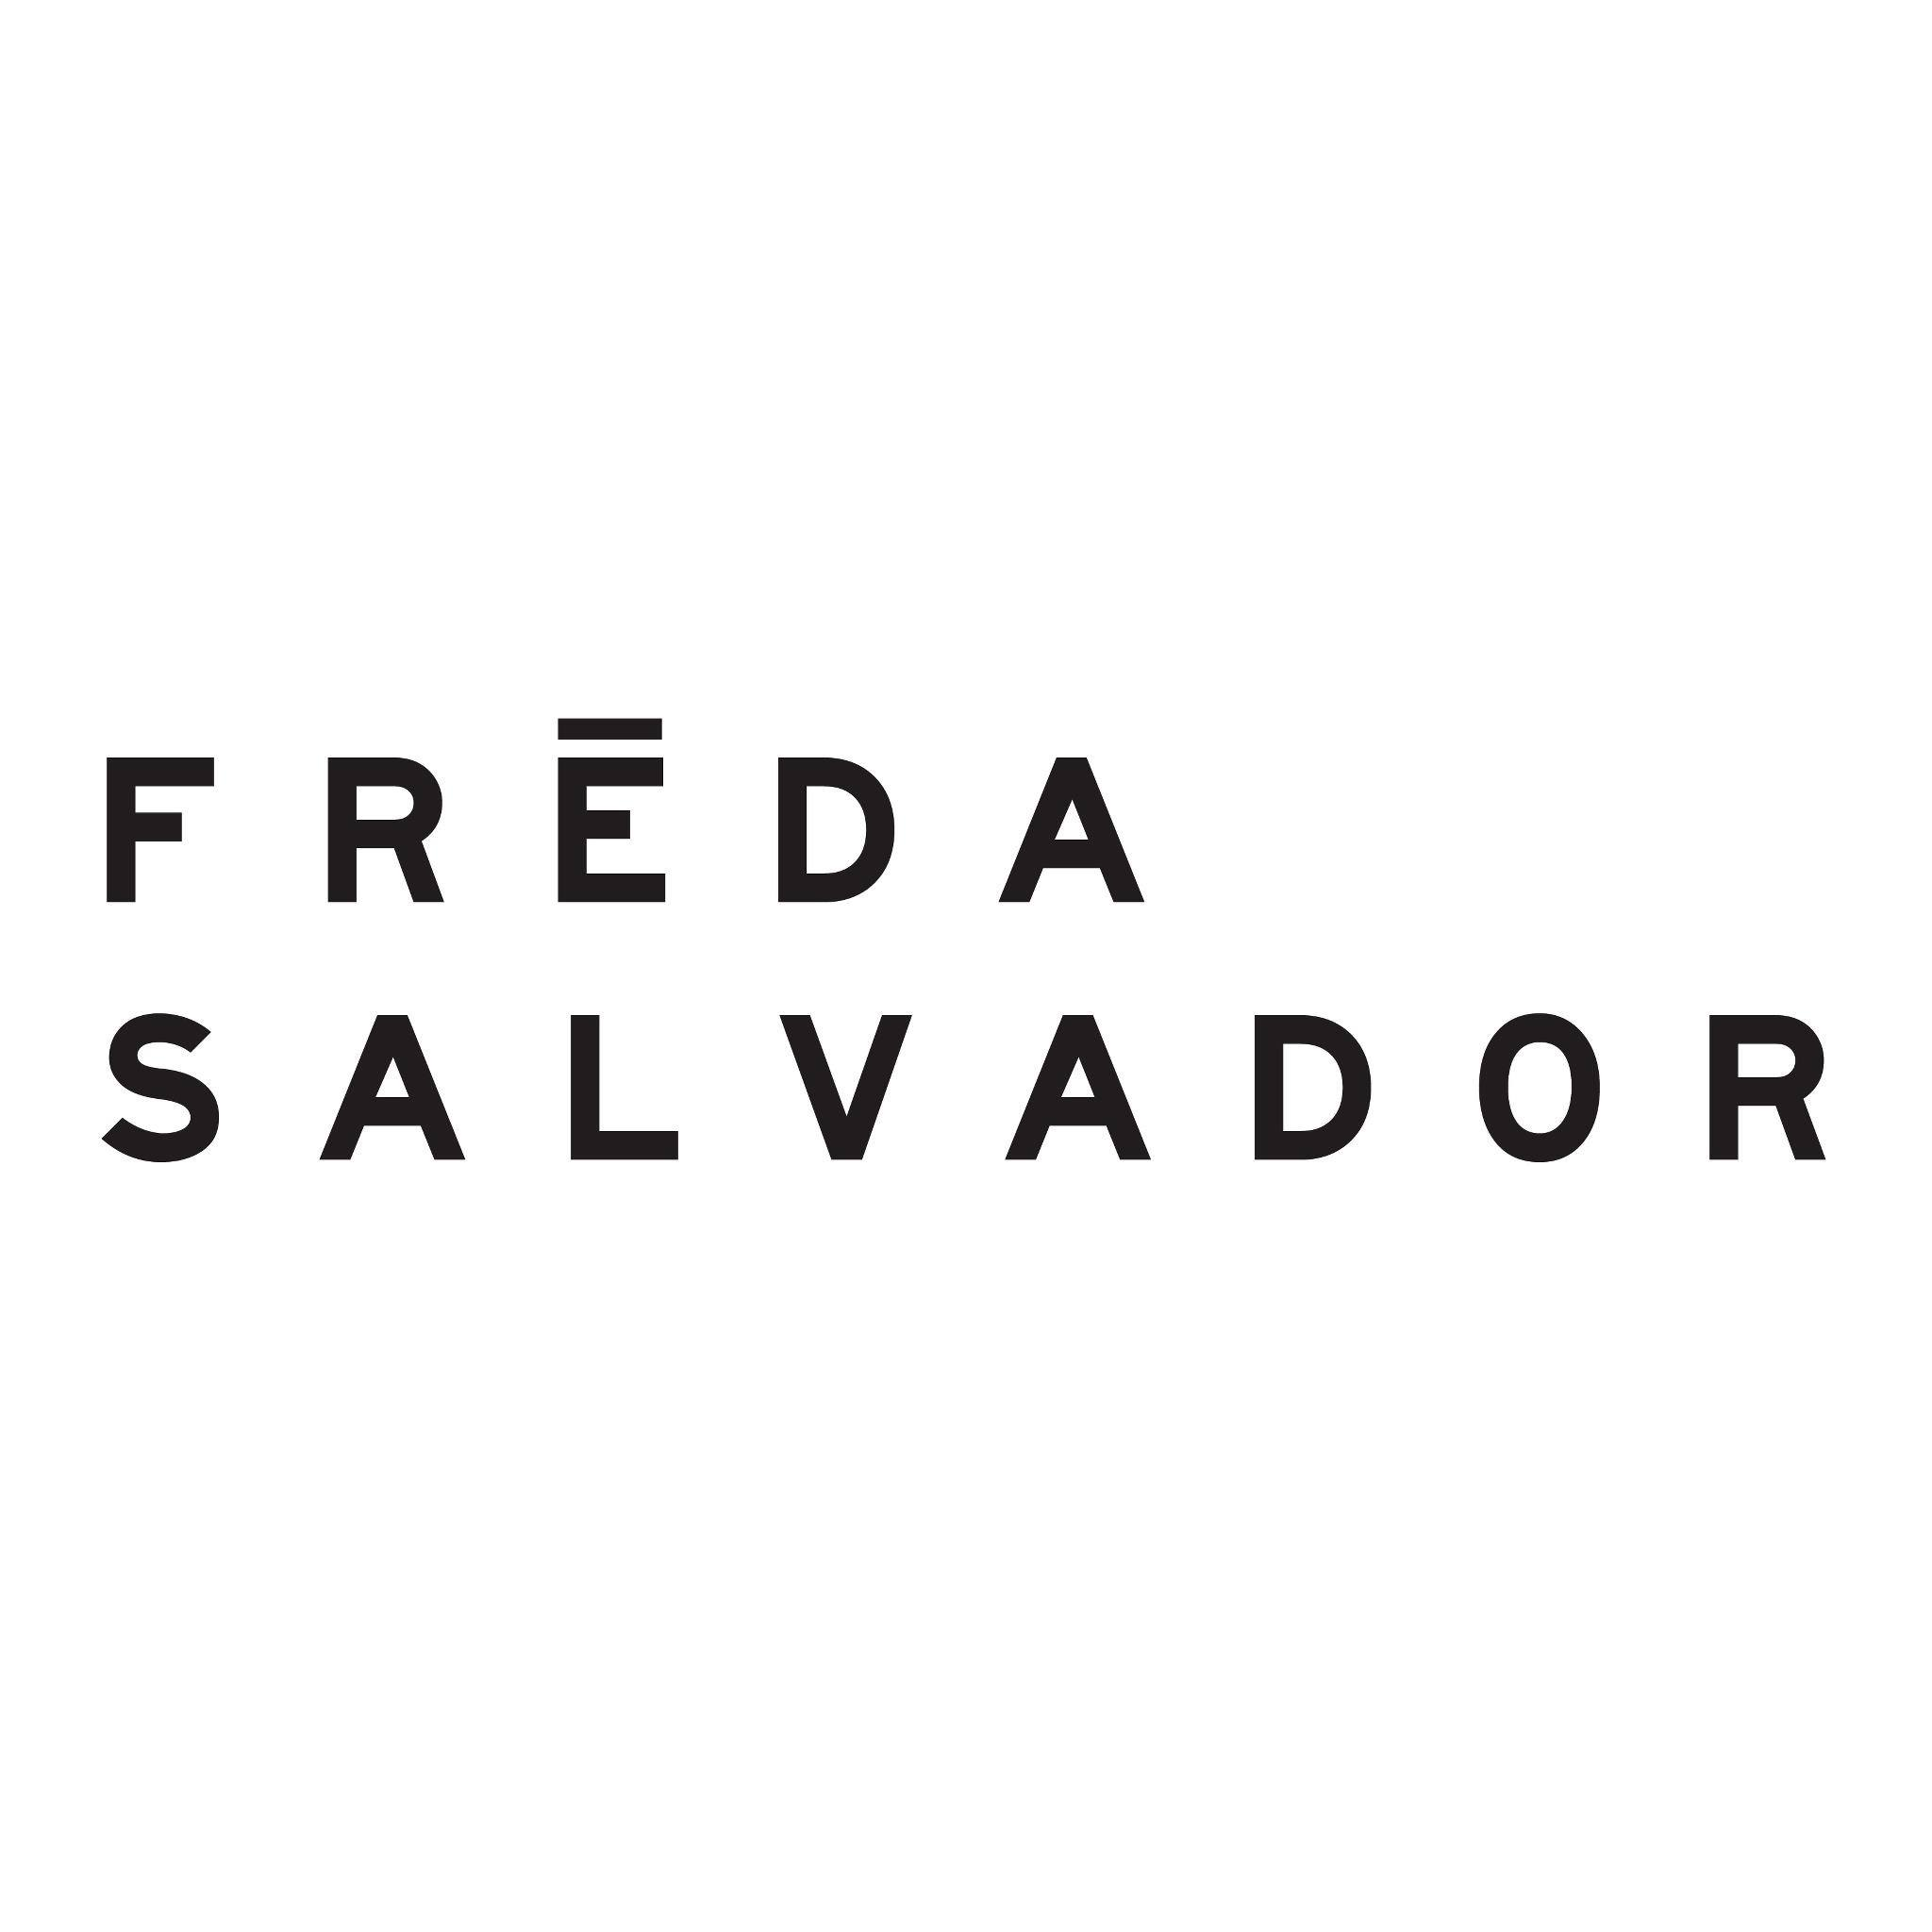 Freda Salvador – Womens clothing, fashion, and footwear